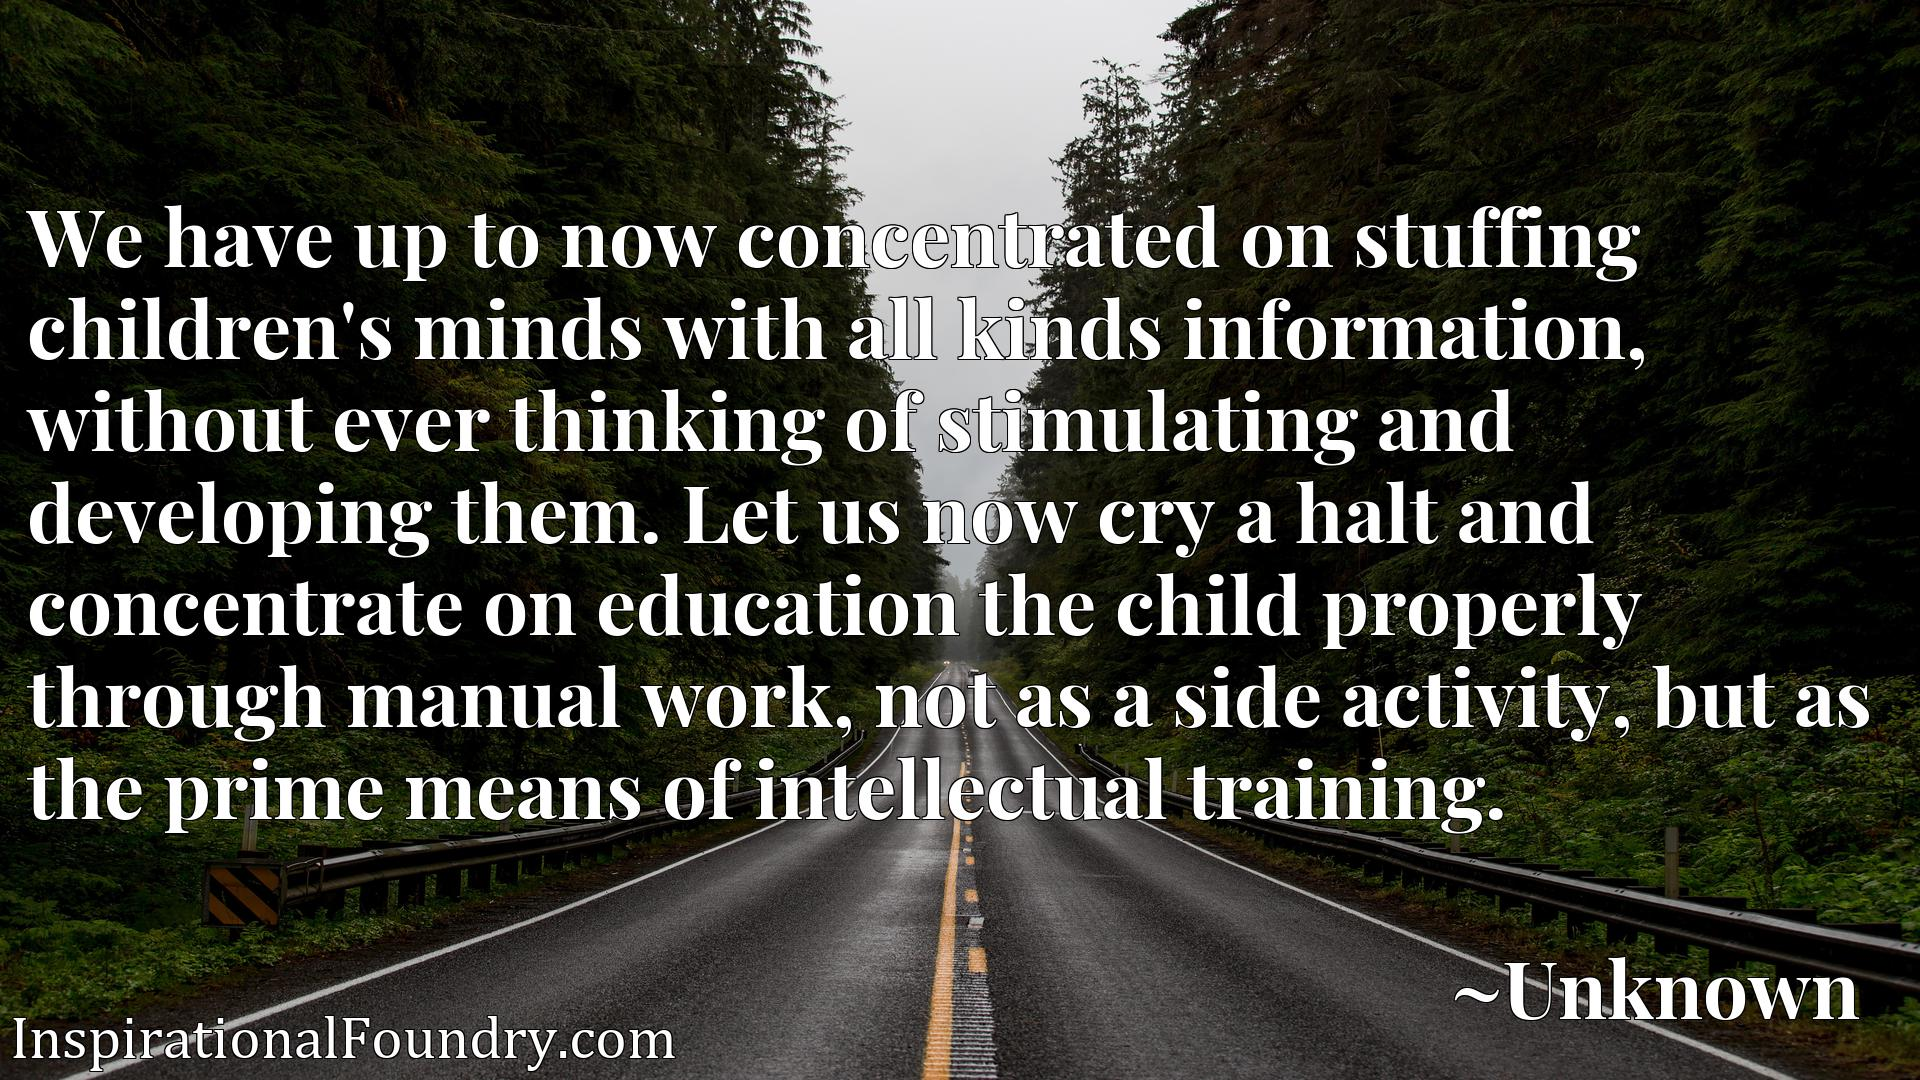 We have up to now concentrated on stuffing children's minds with all kinds information, without ever thinking of stimulating and developing them. Let us now cry a halt and concentrate on education the child properly through manual work, not as a side activity, but as the prime means of intellectual training.